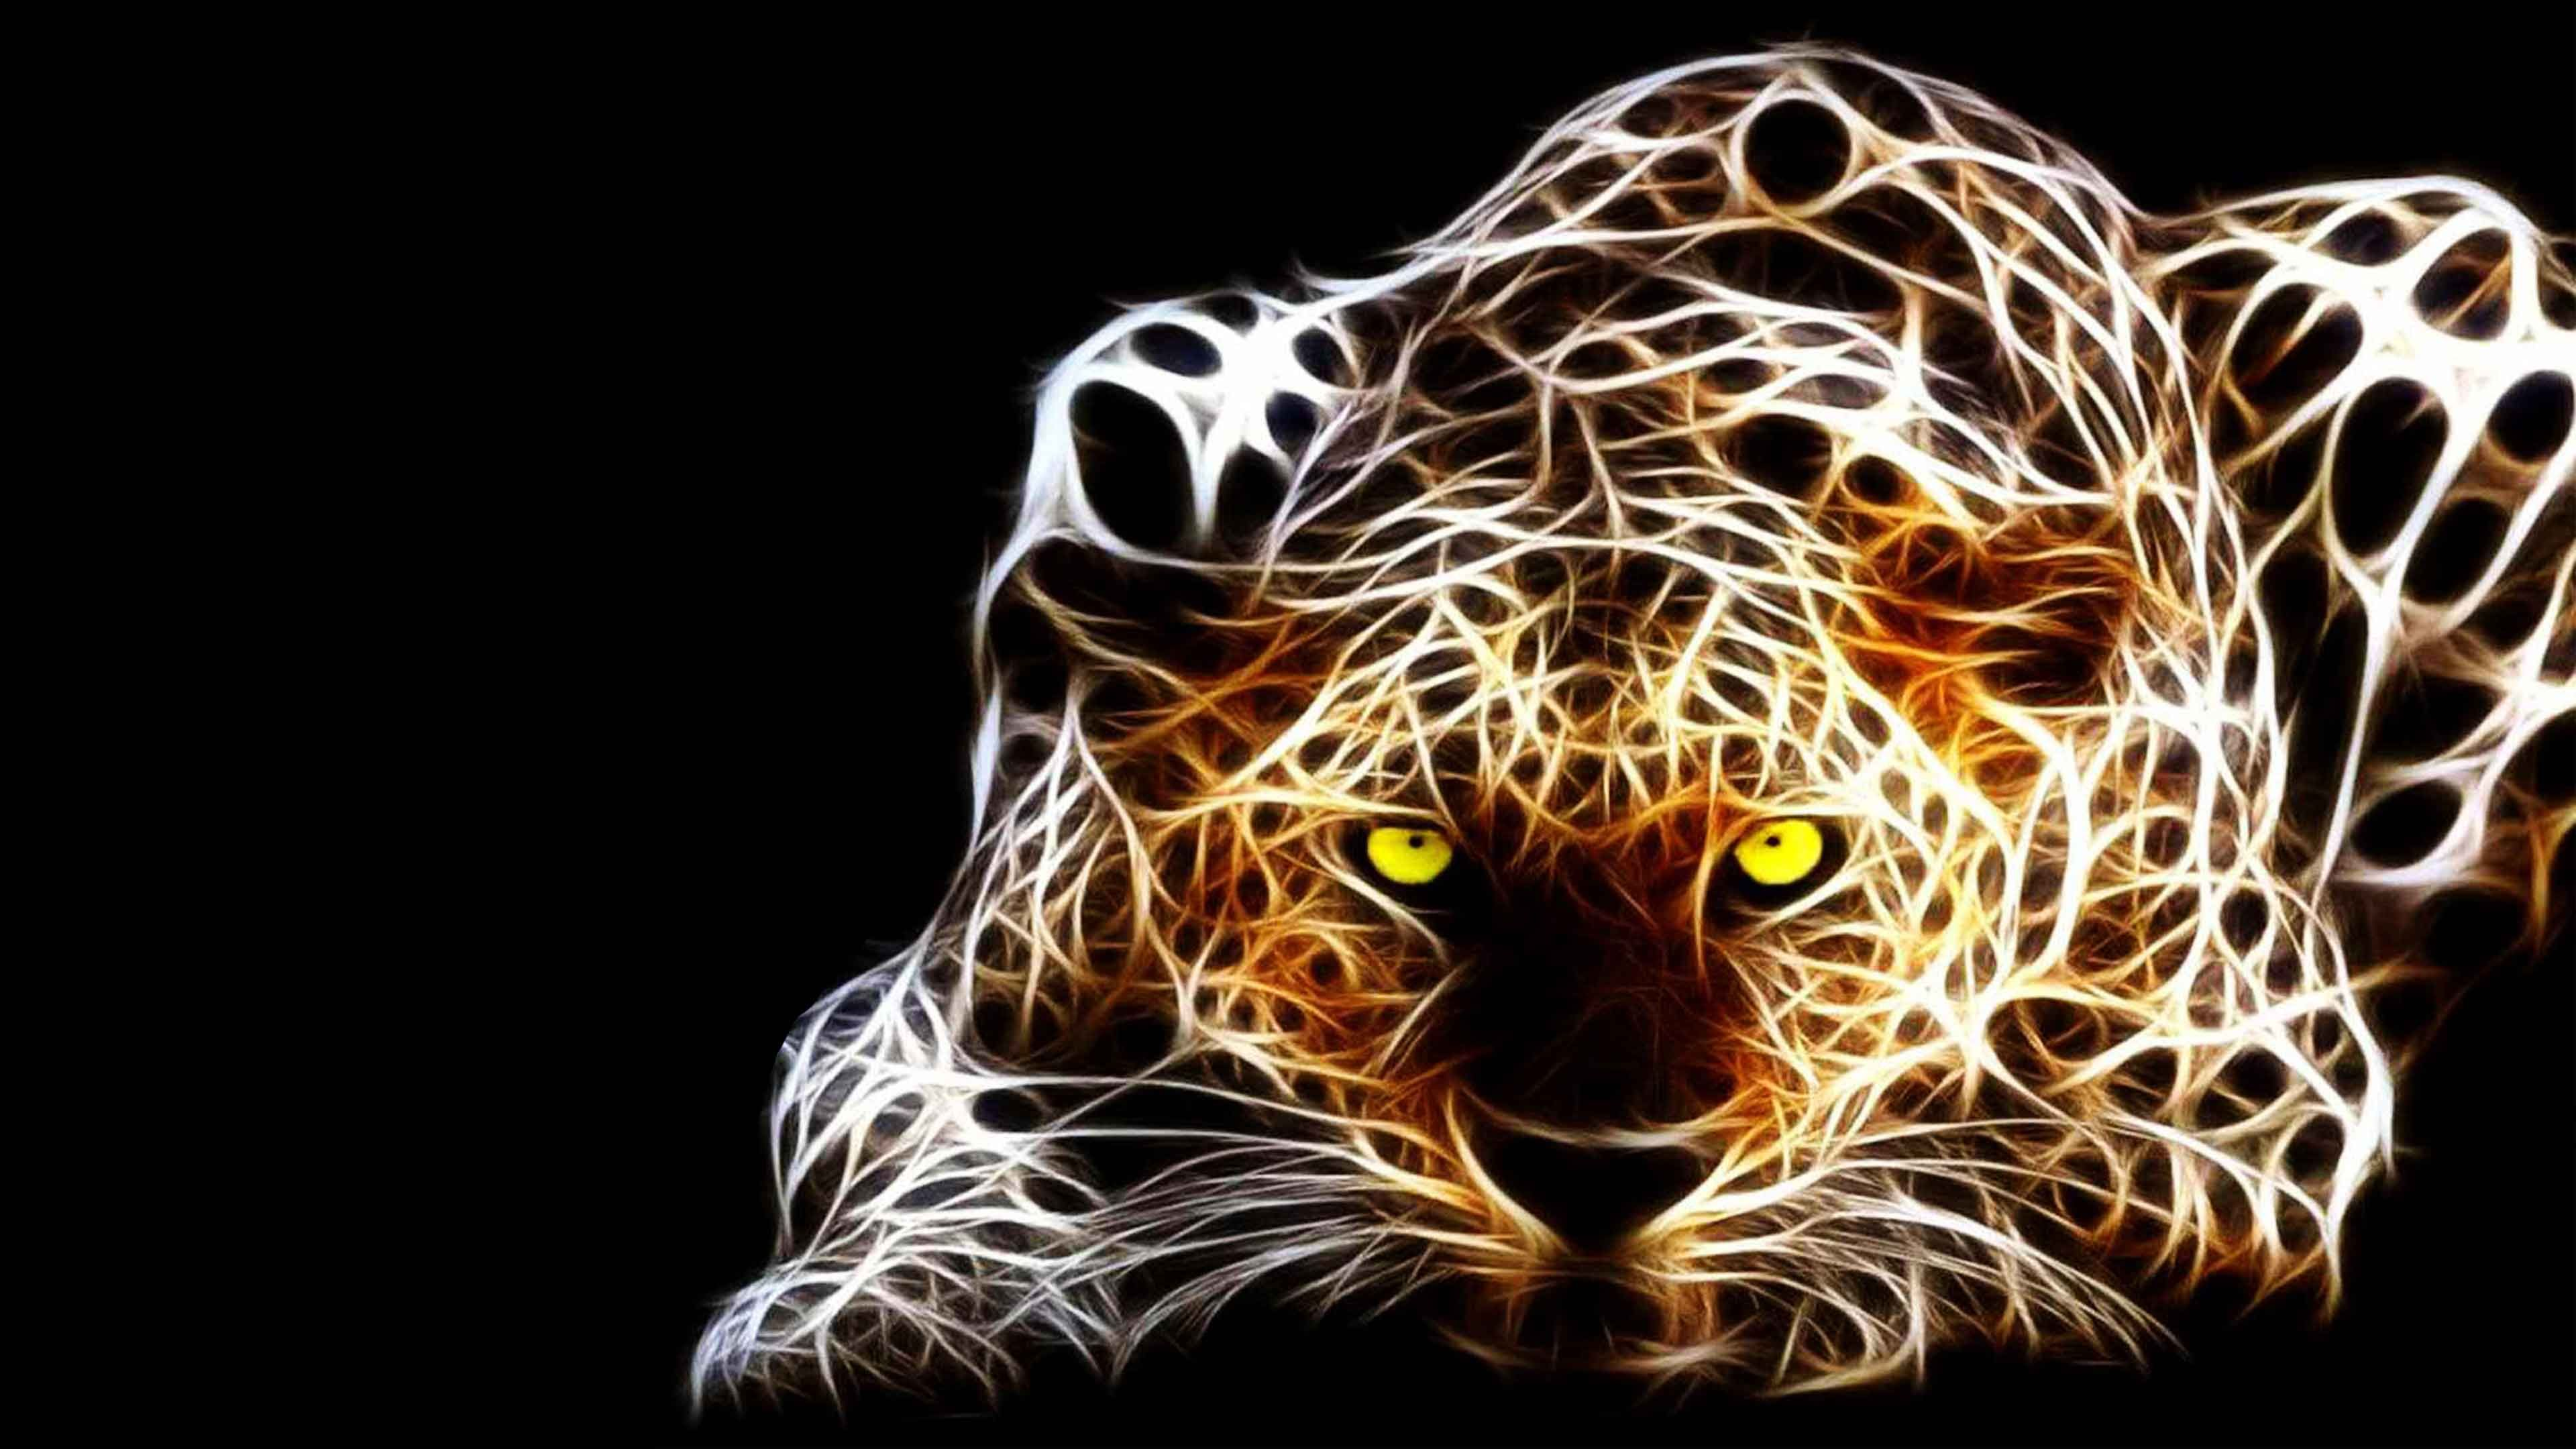 3d Tiger Background Tiger Art Tiger Wallpaper Leopard Wallpaper